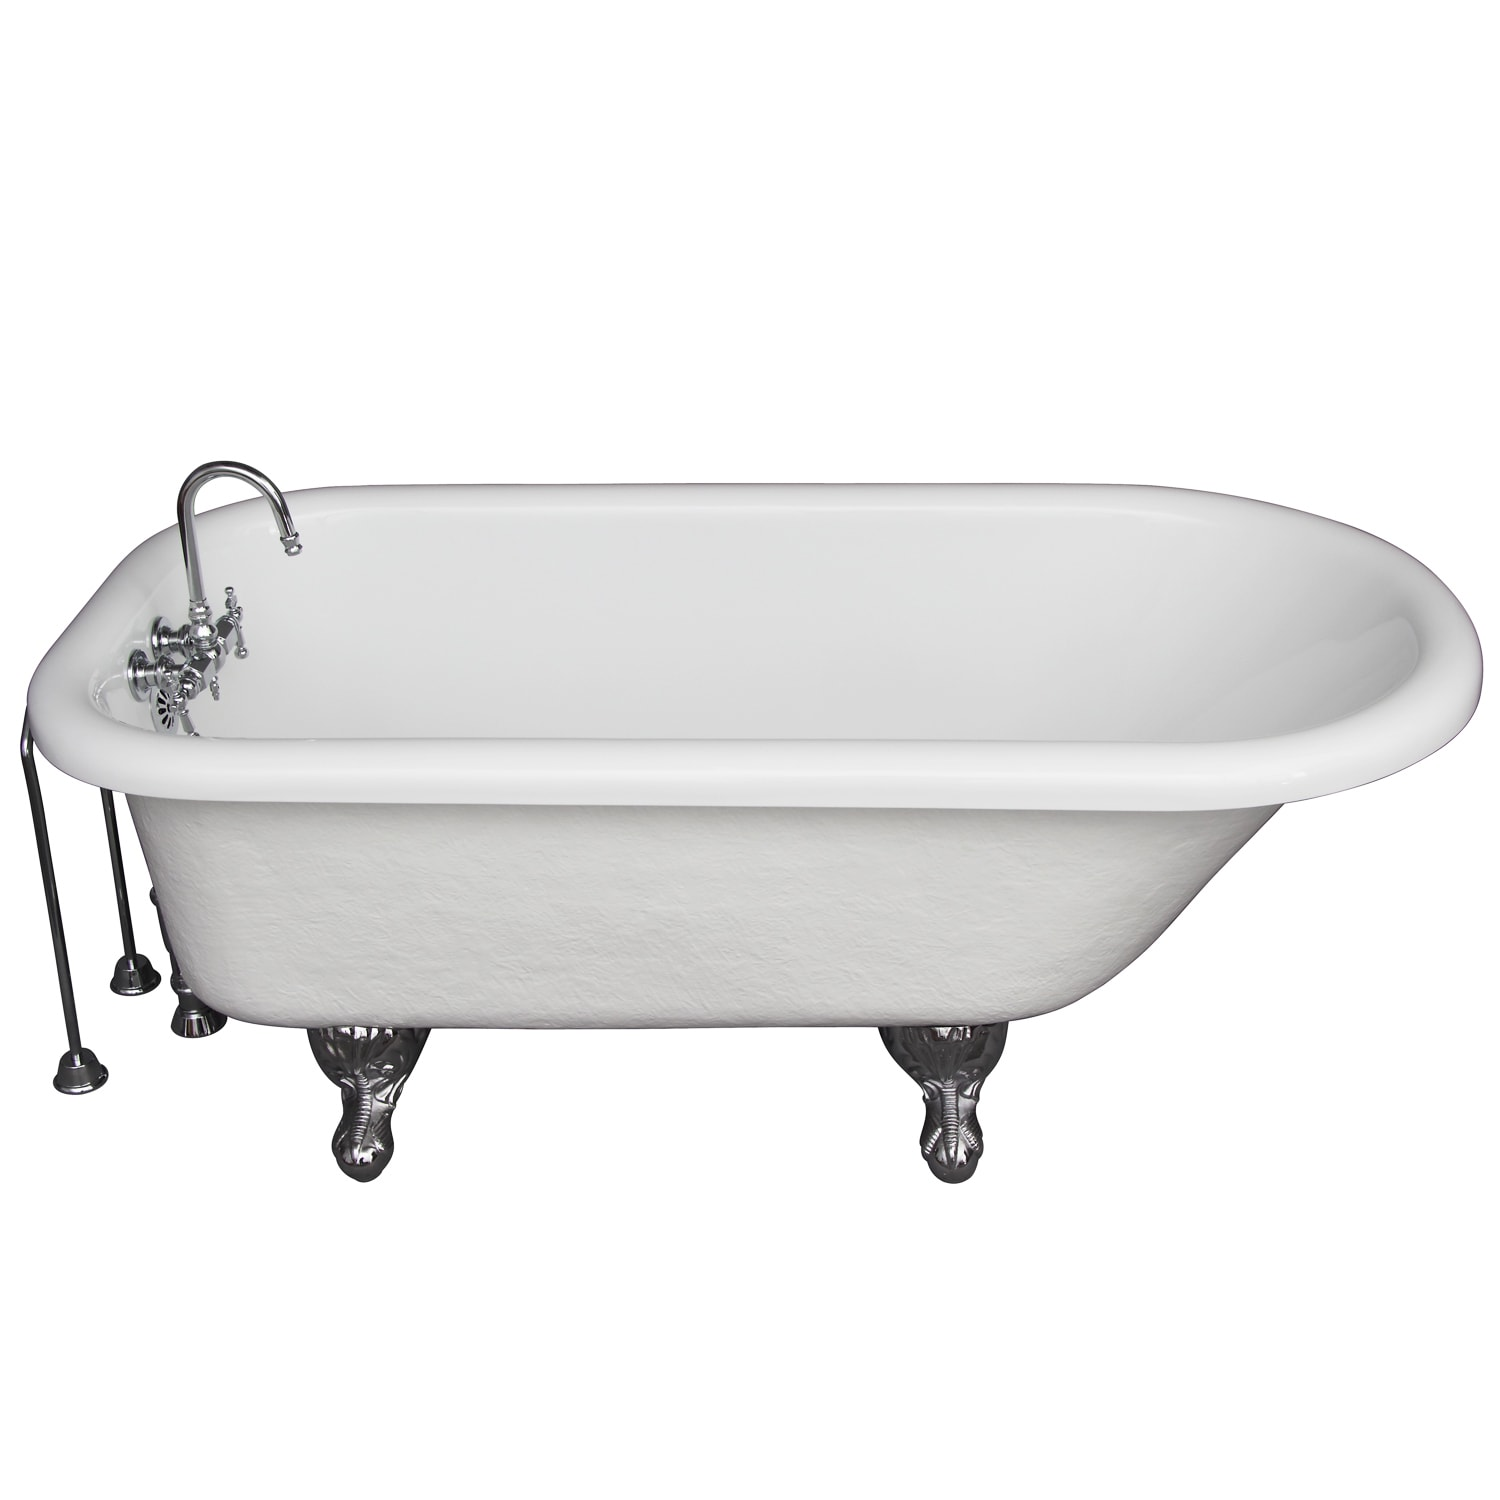 Shop 5-foot Acrylic Ball and Claw Feet Tub in White - Free Shipping ...